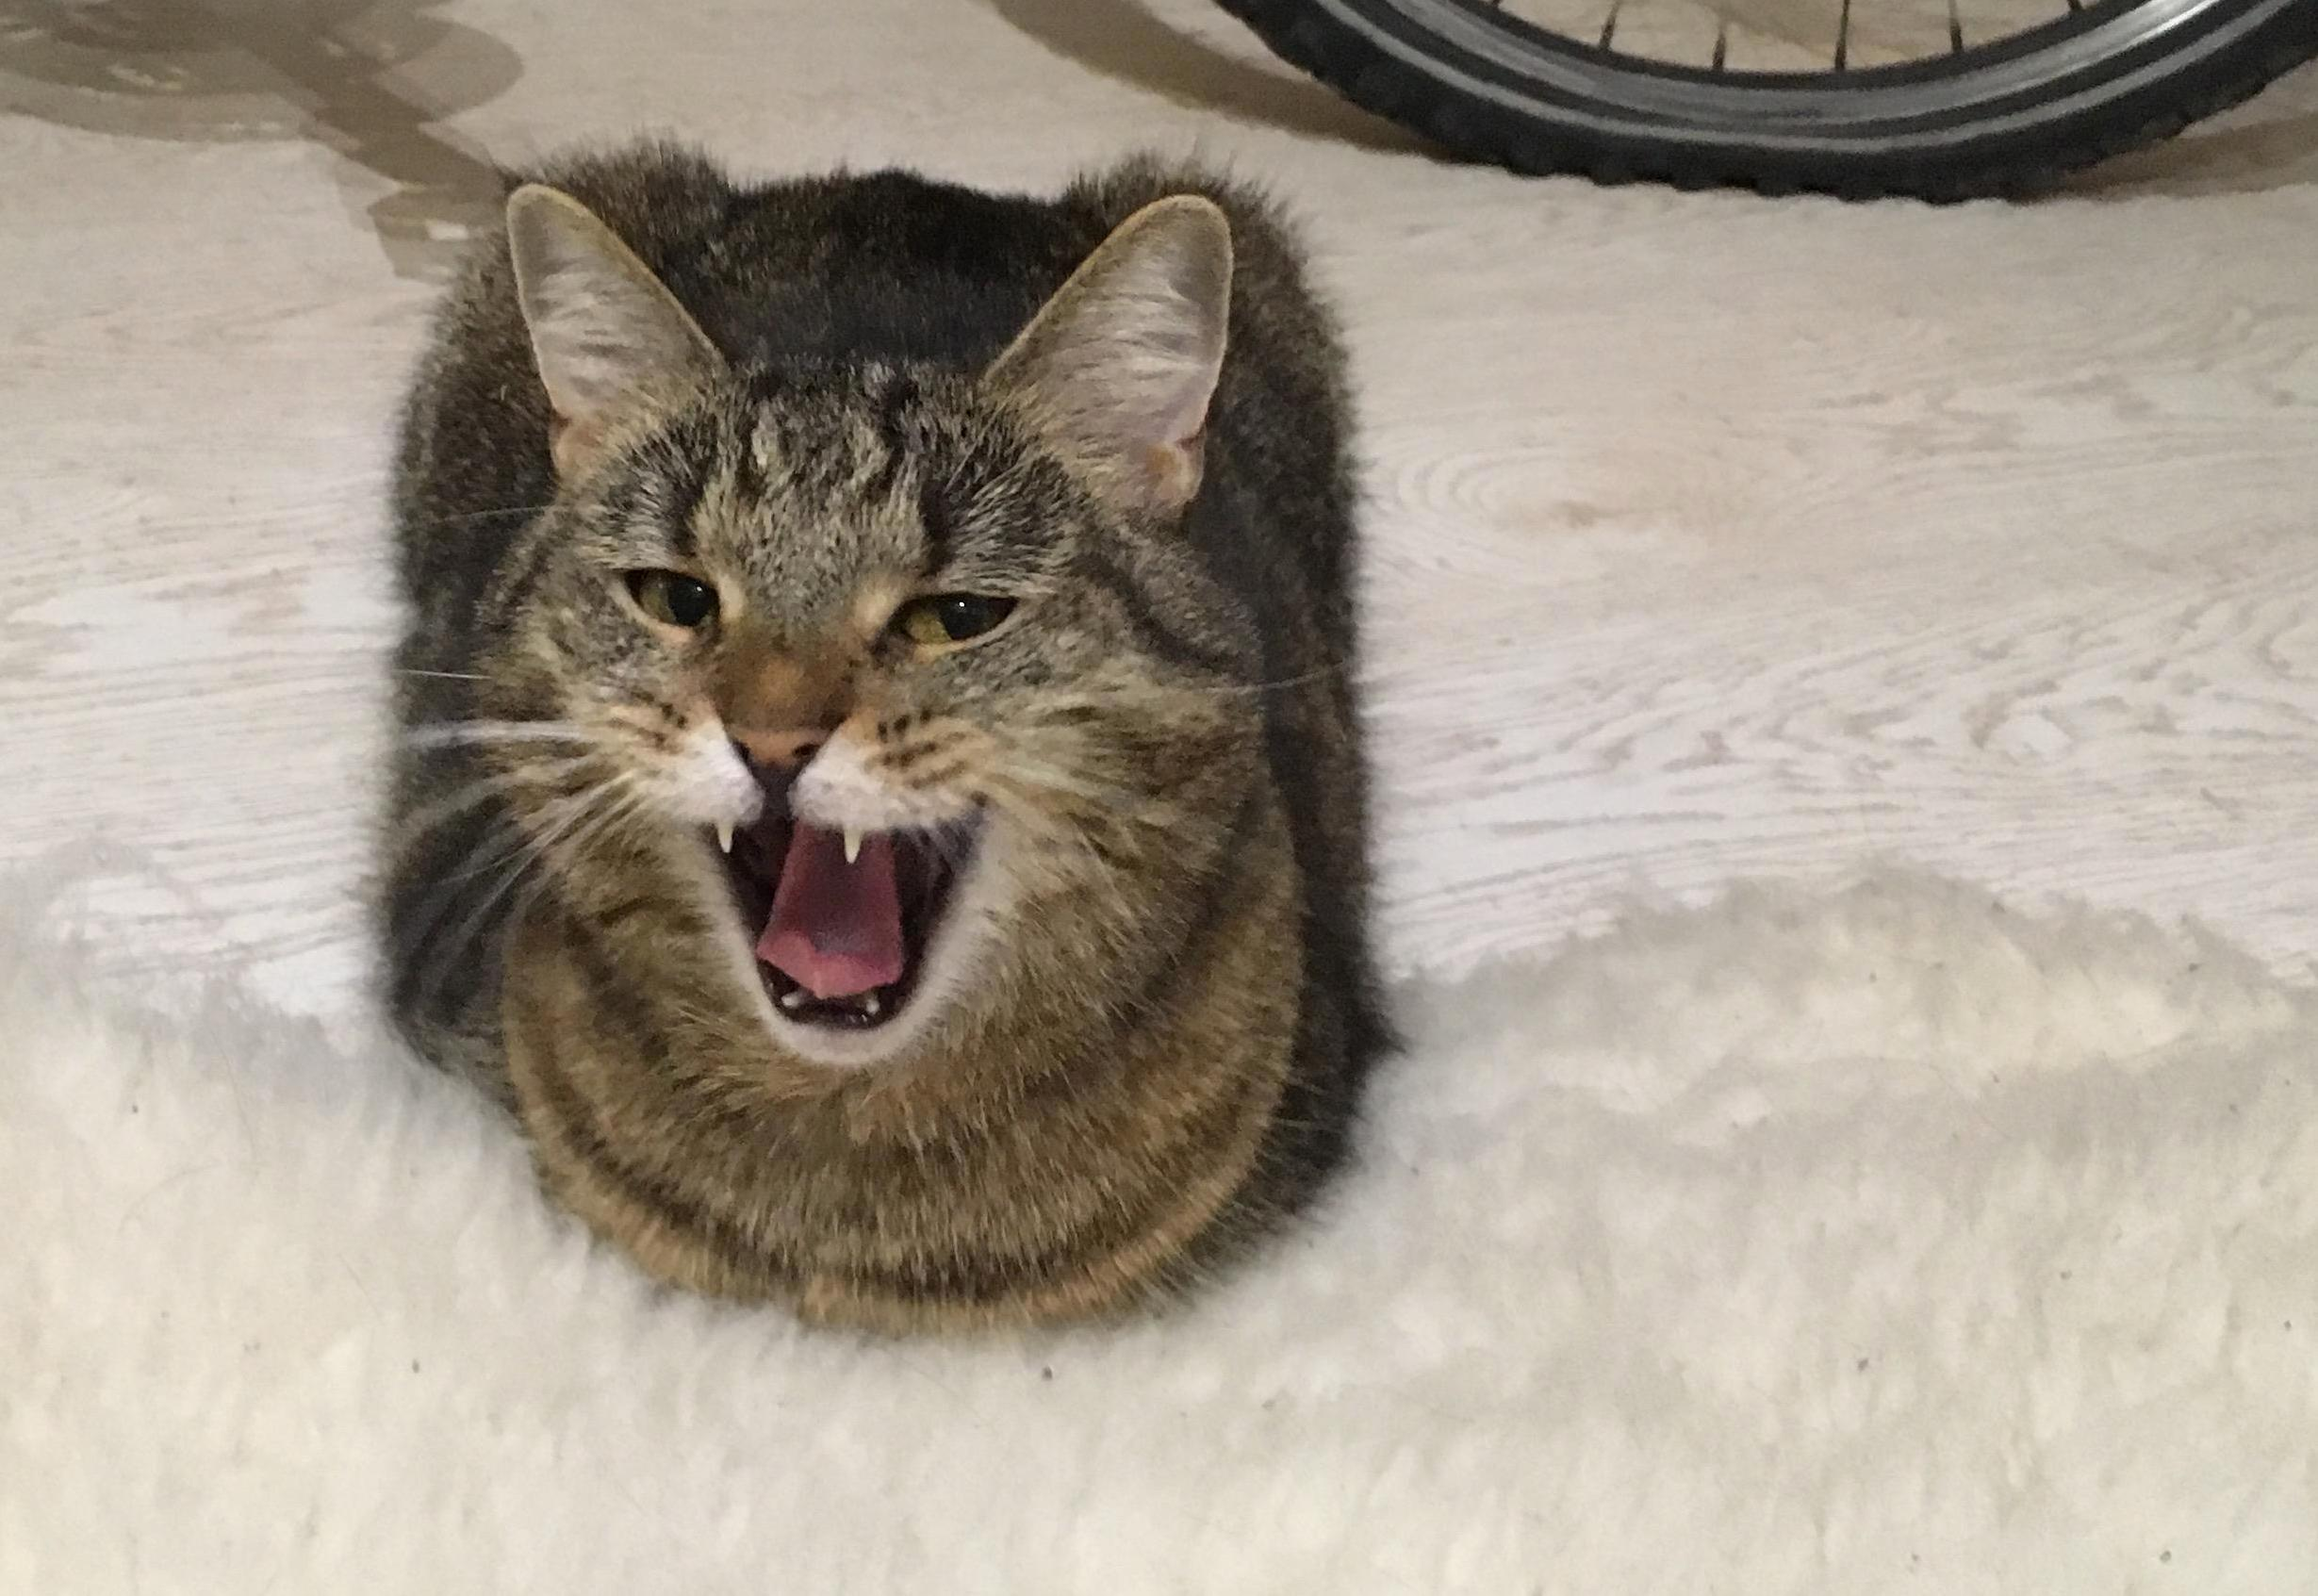 My cat just told me a joke and expects me to laugh